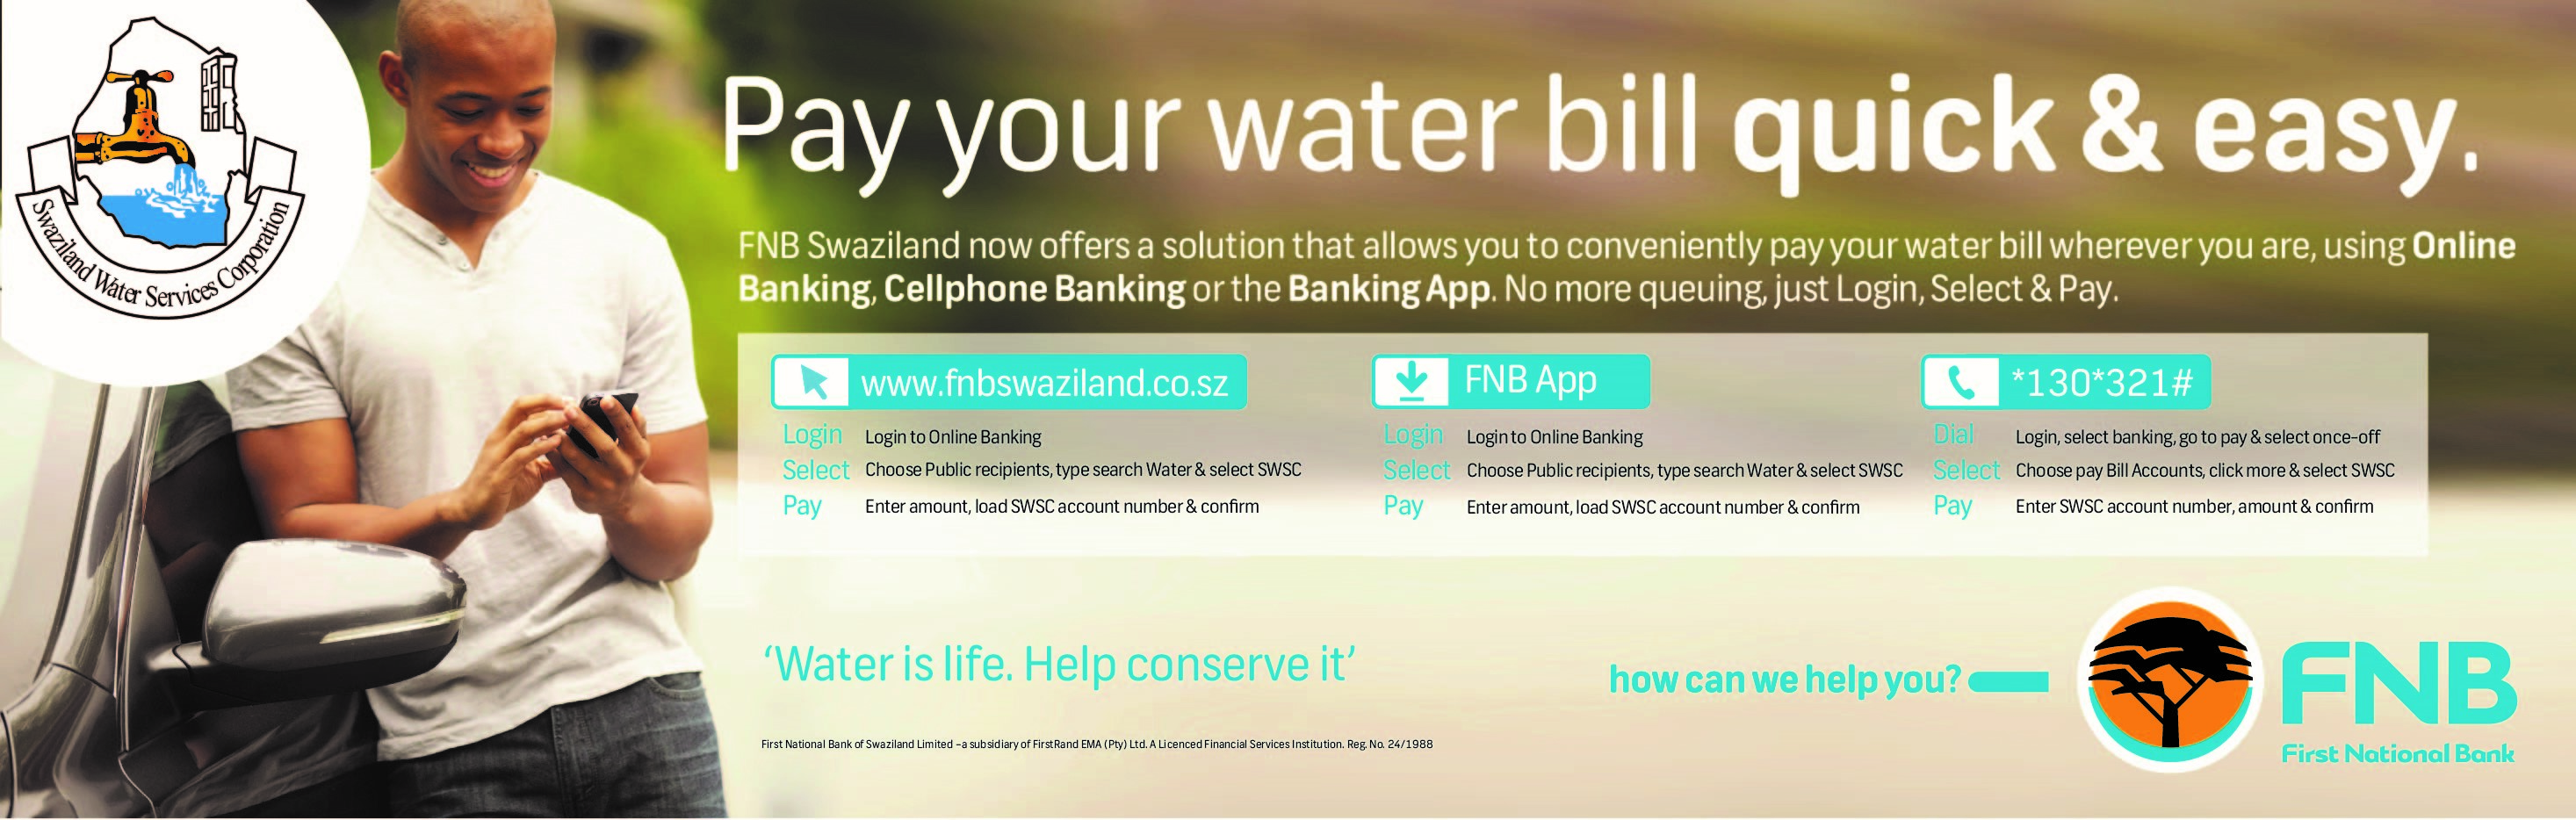 FNB water payment option